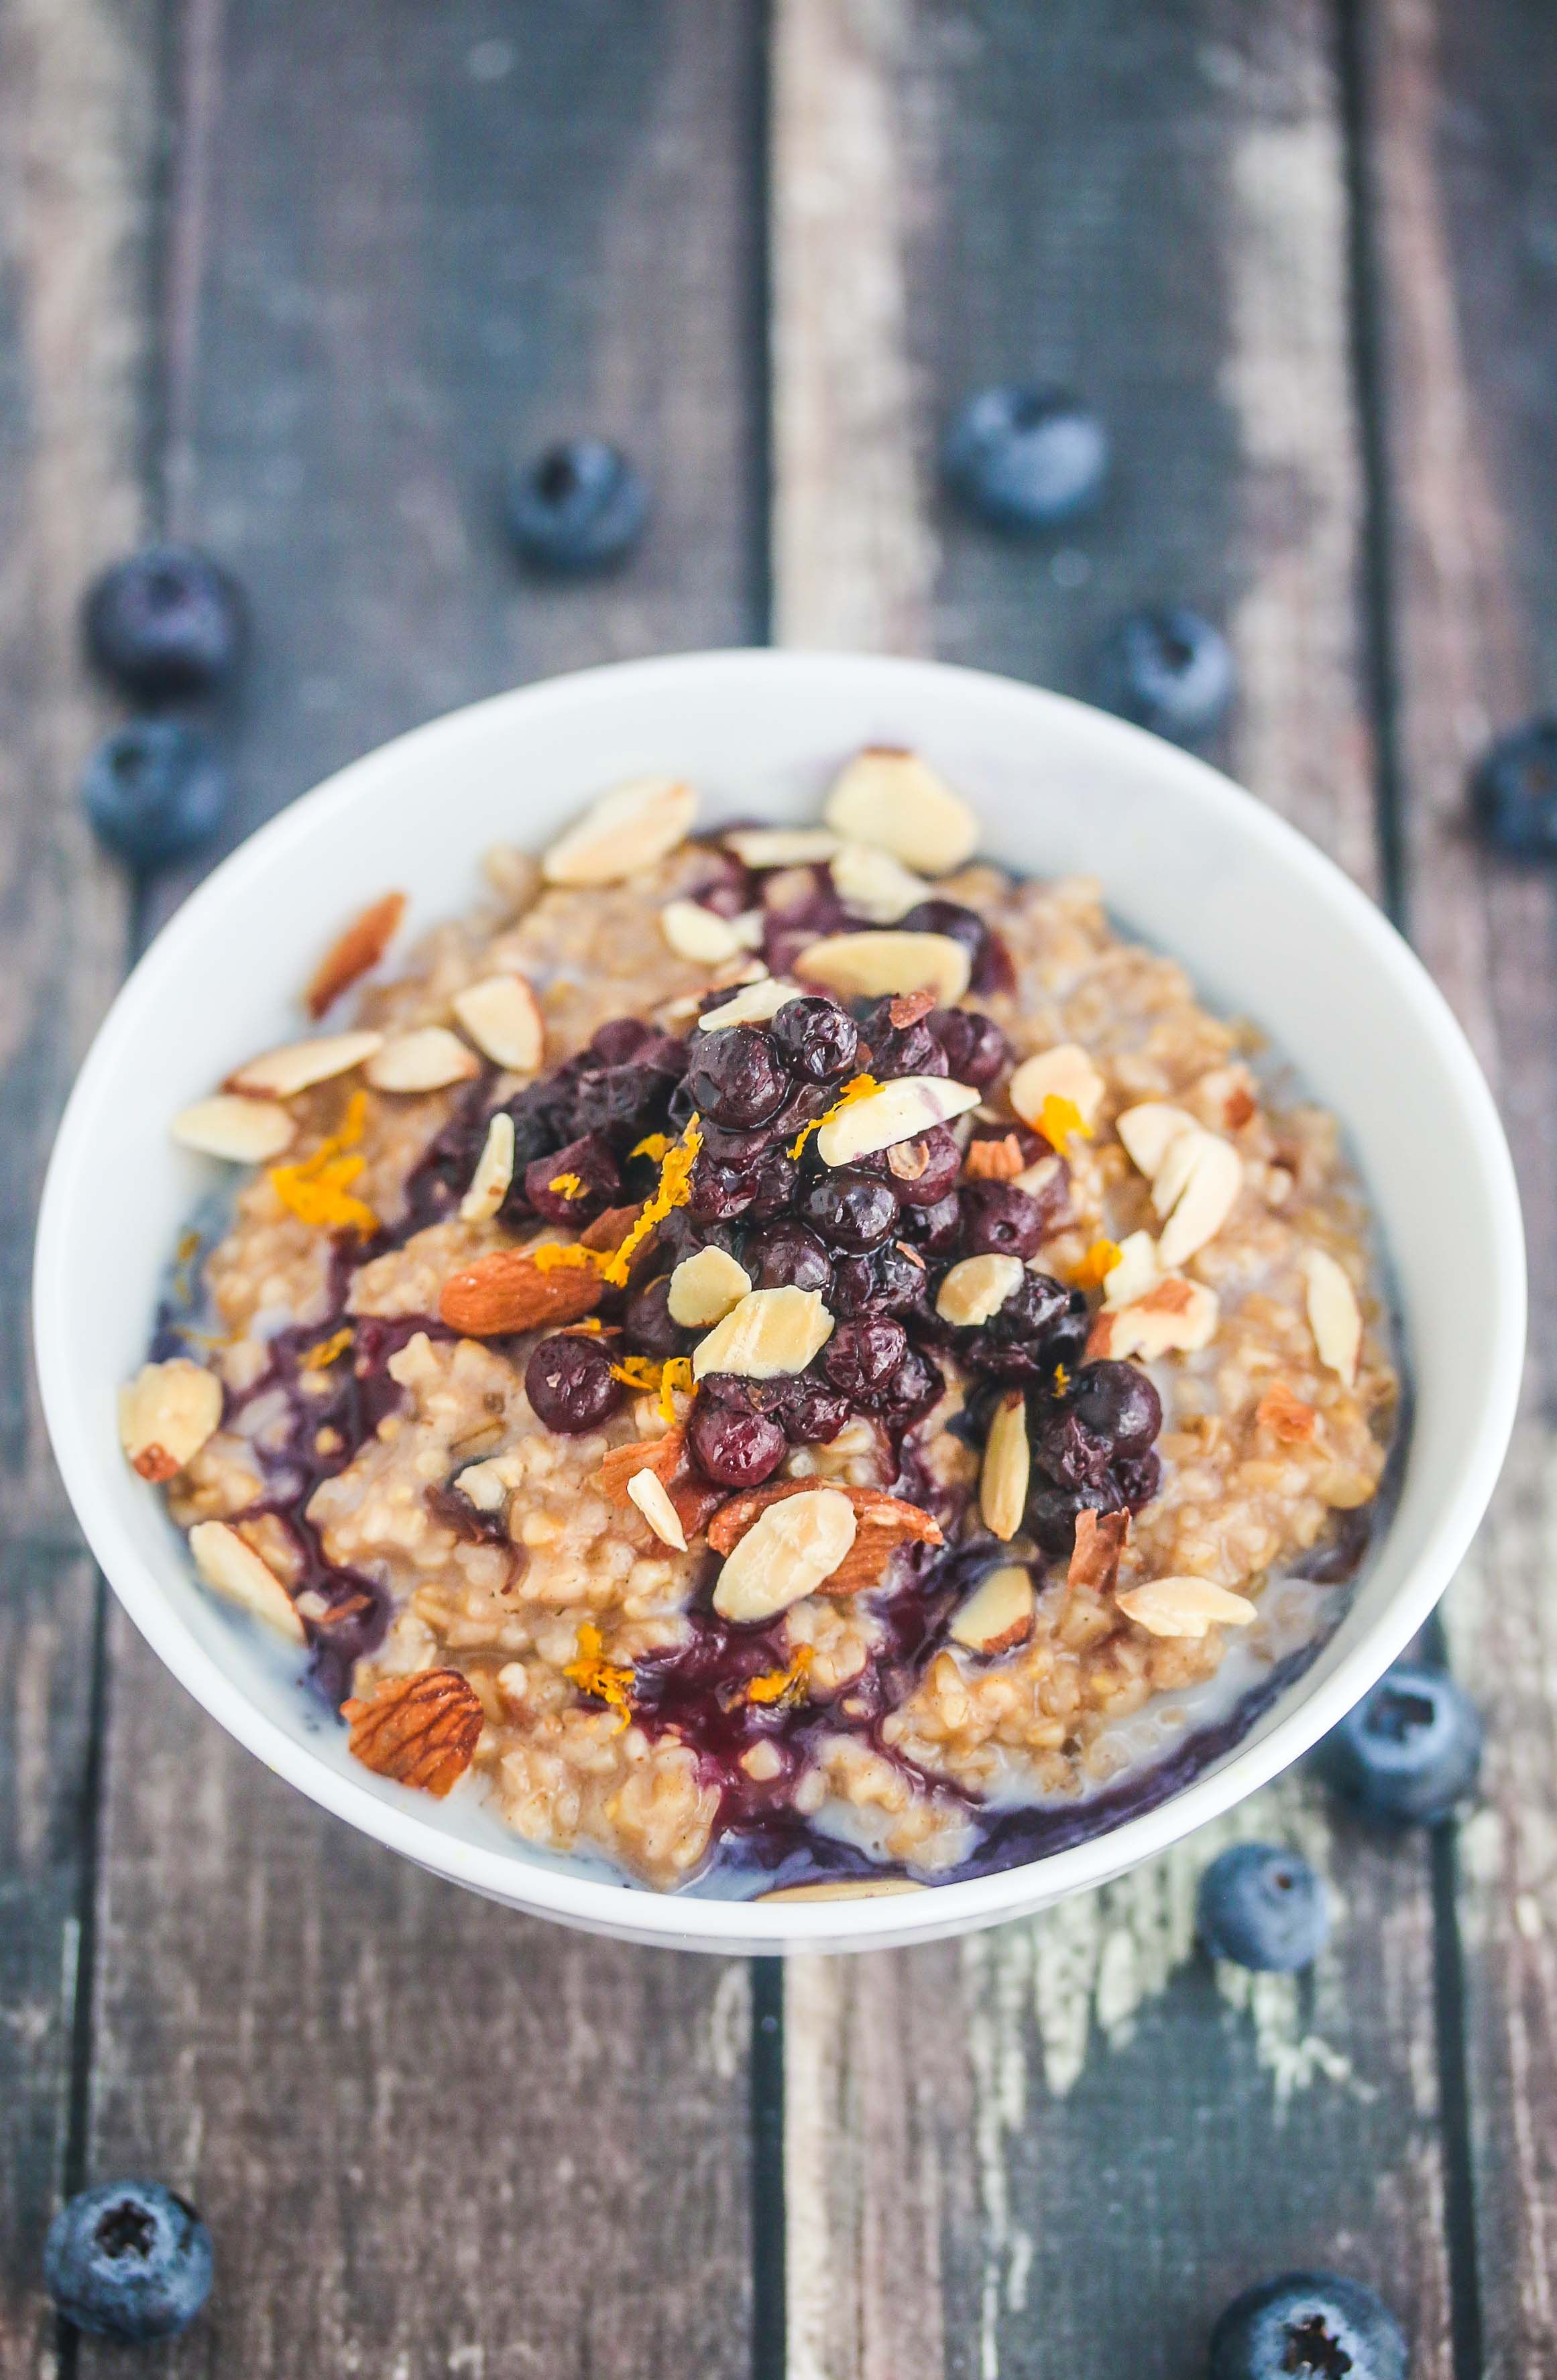 13 Healthy Oatmeal Recipes That Taste Freaking Amazing